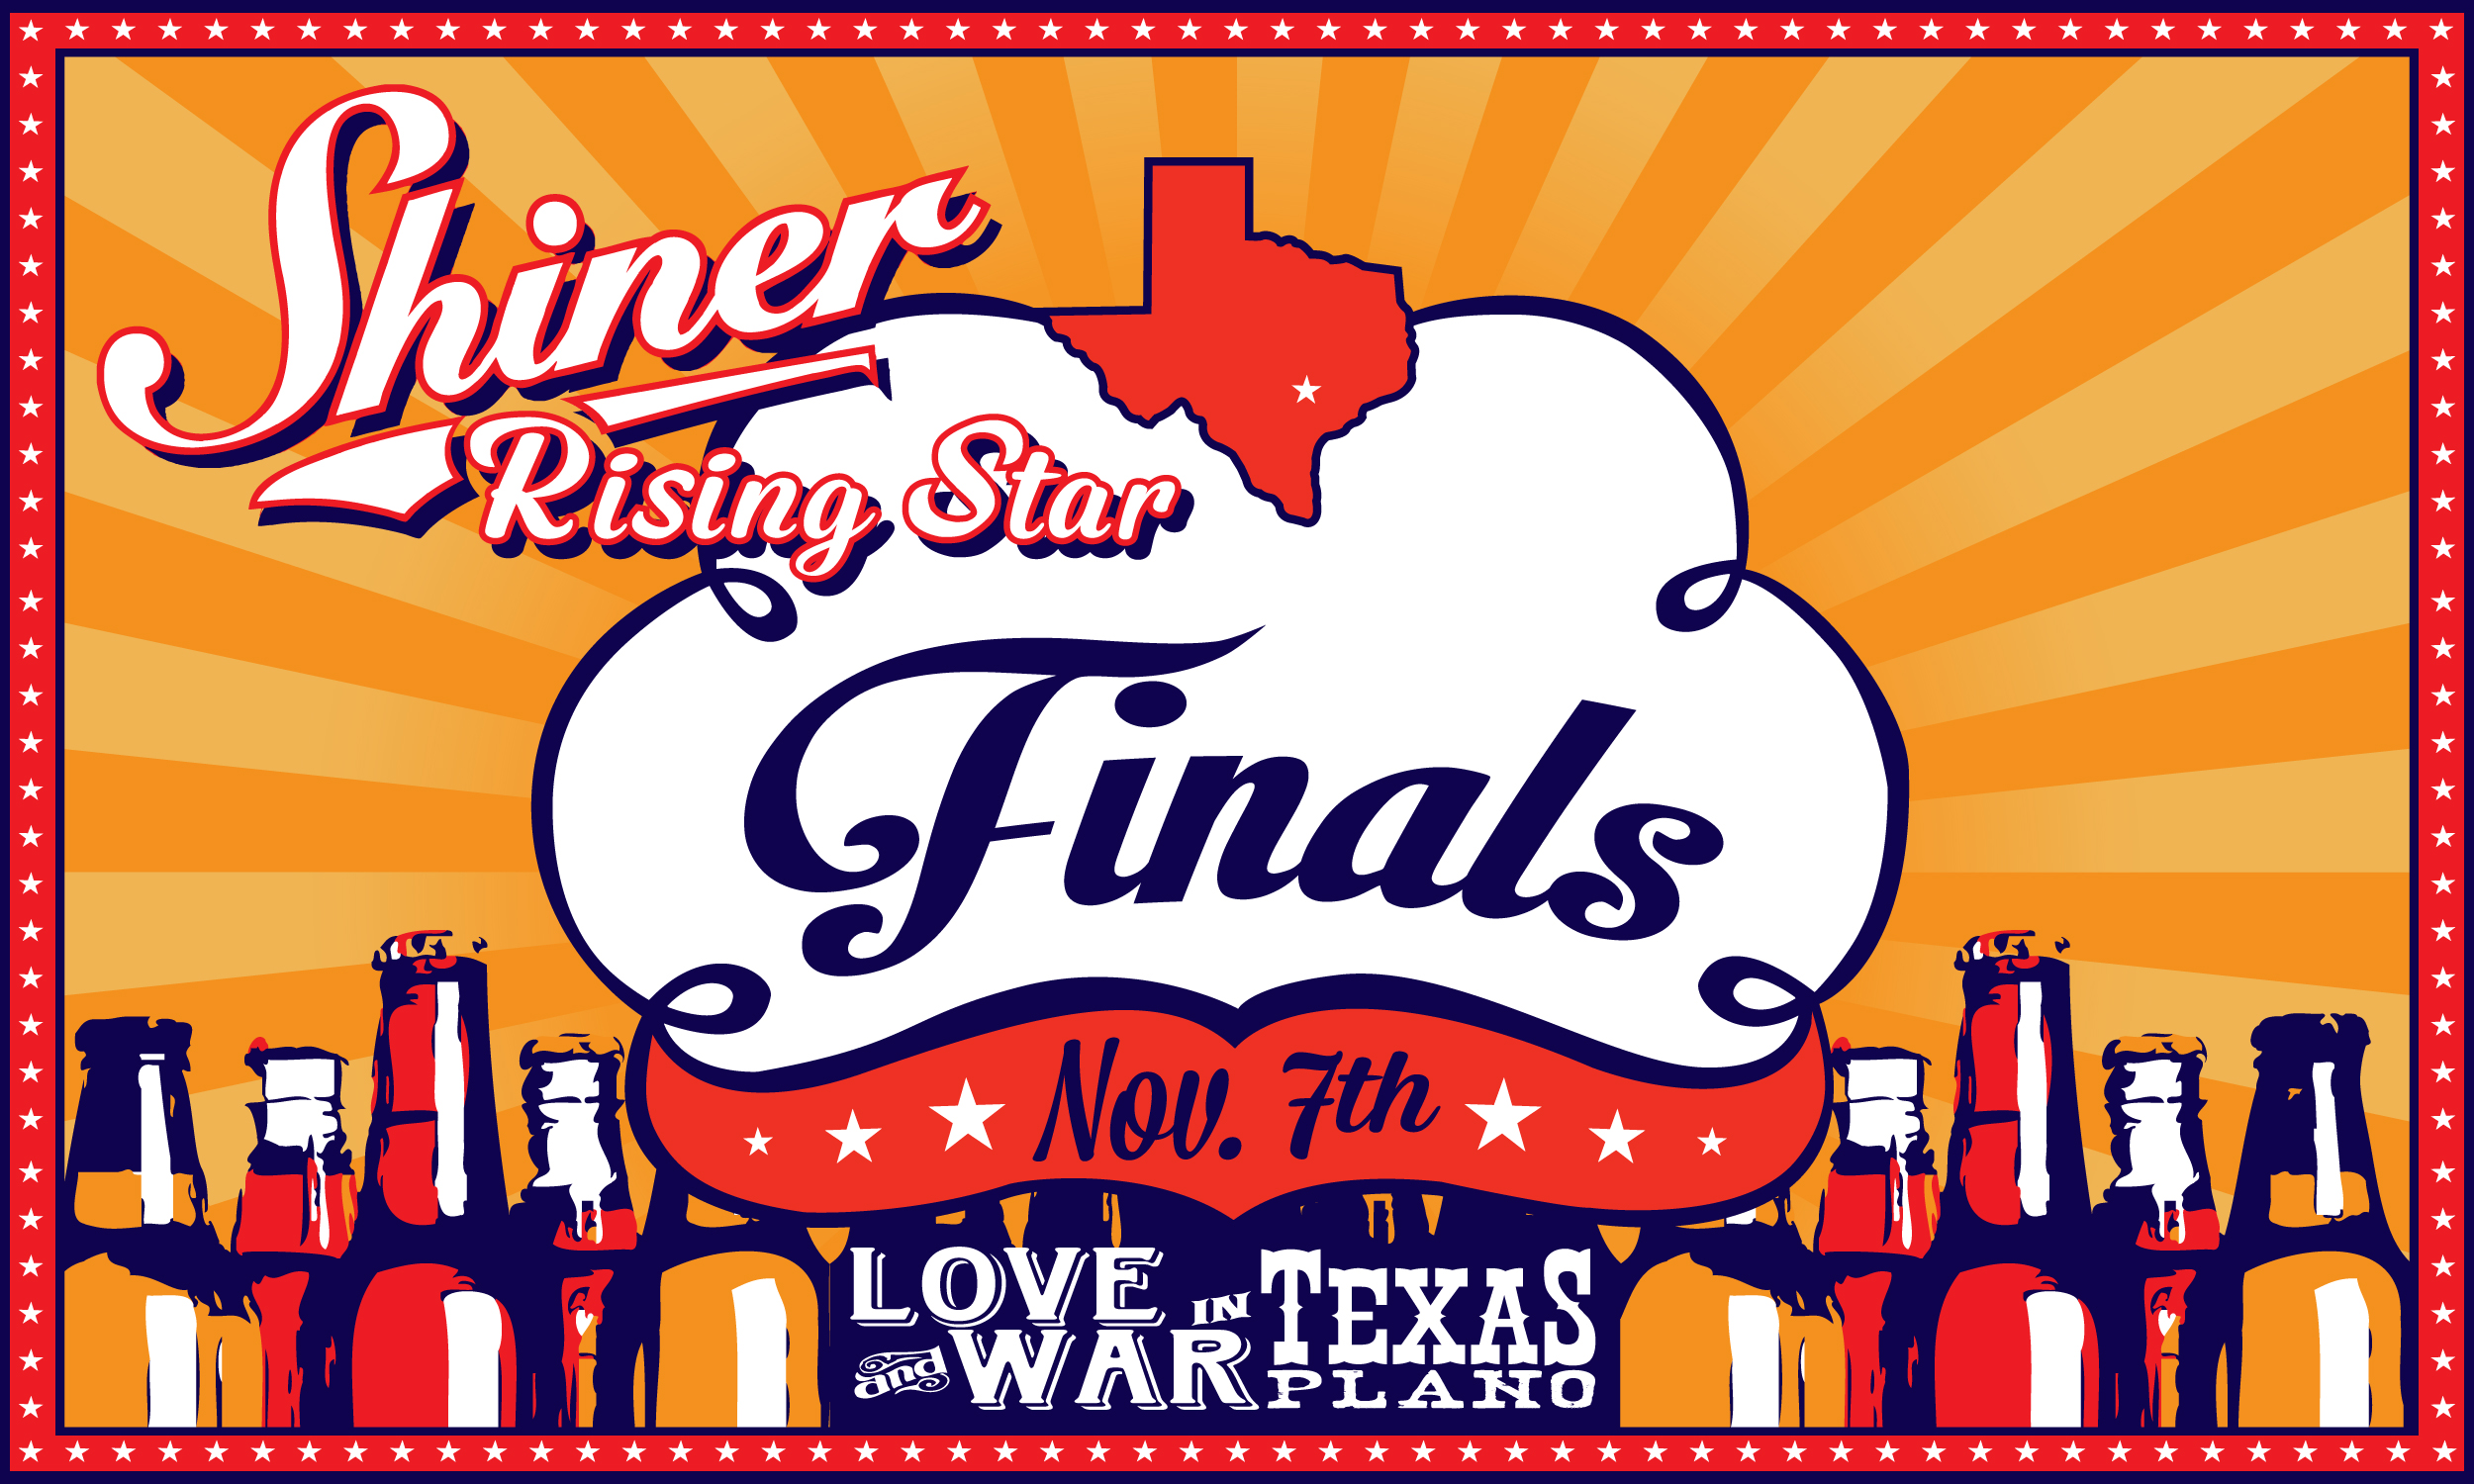 RISING-STAR-11-7-13-FINALS-PLANO